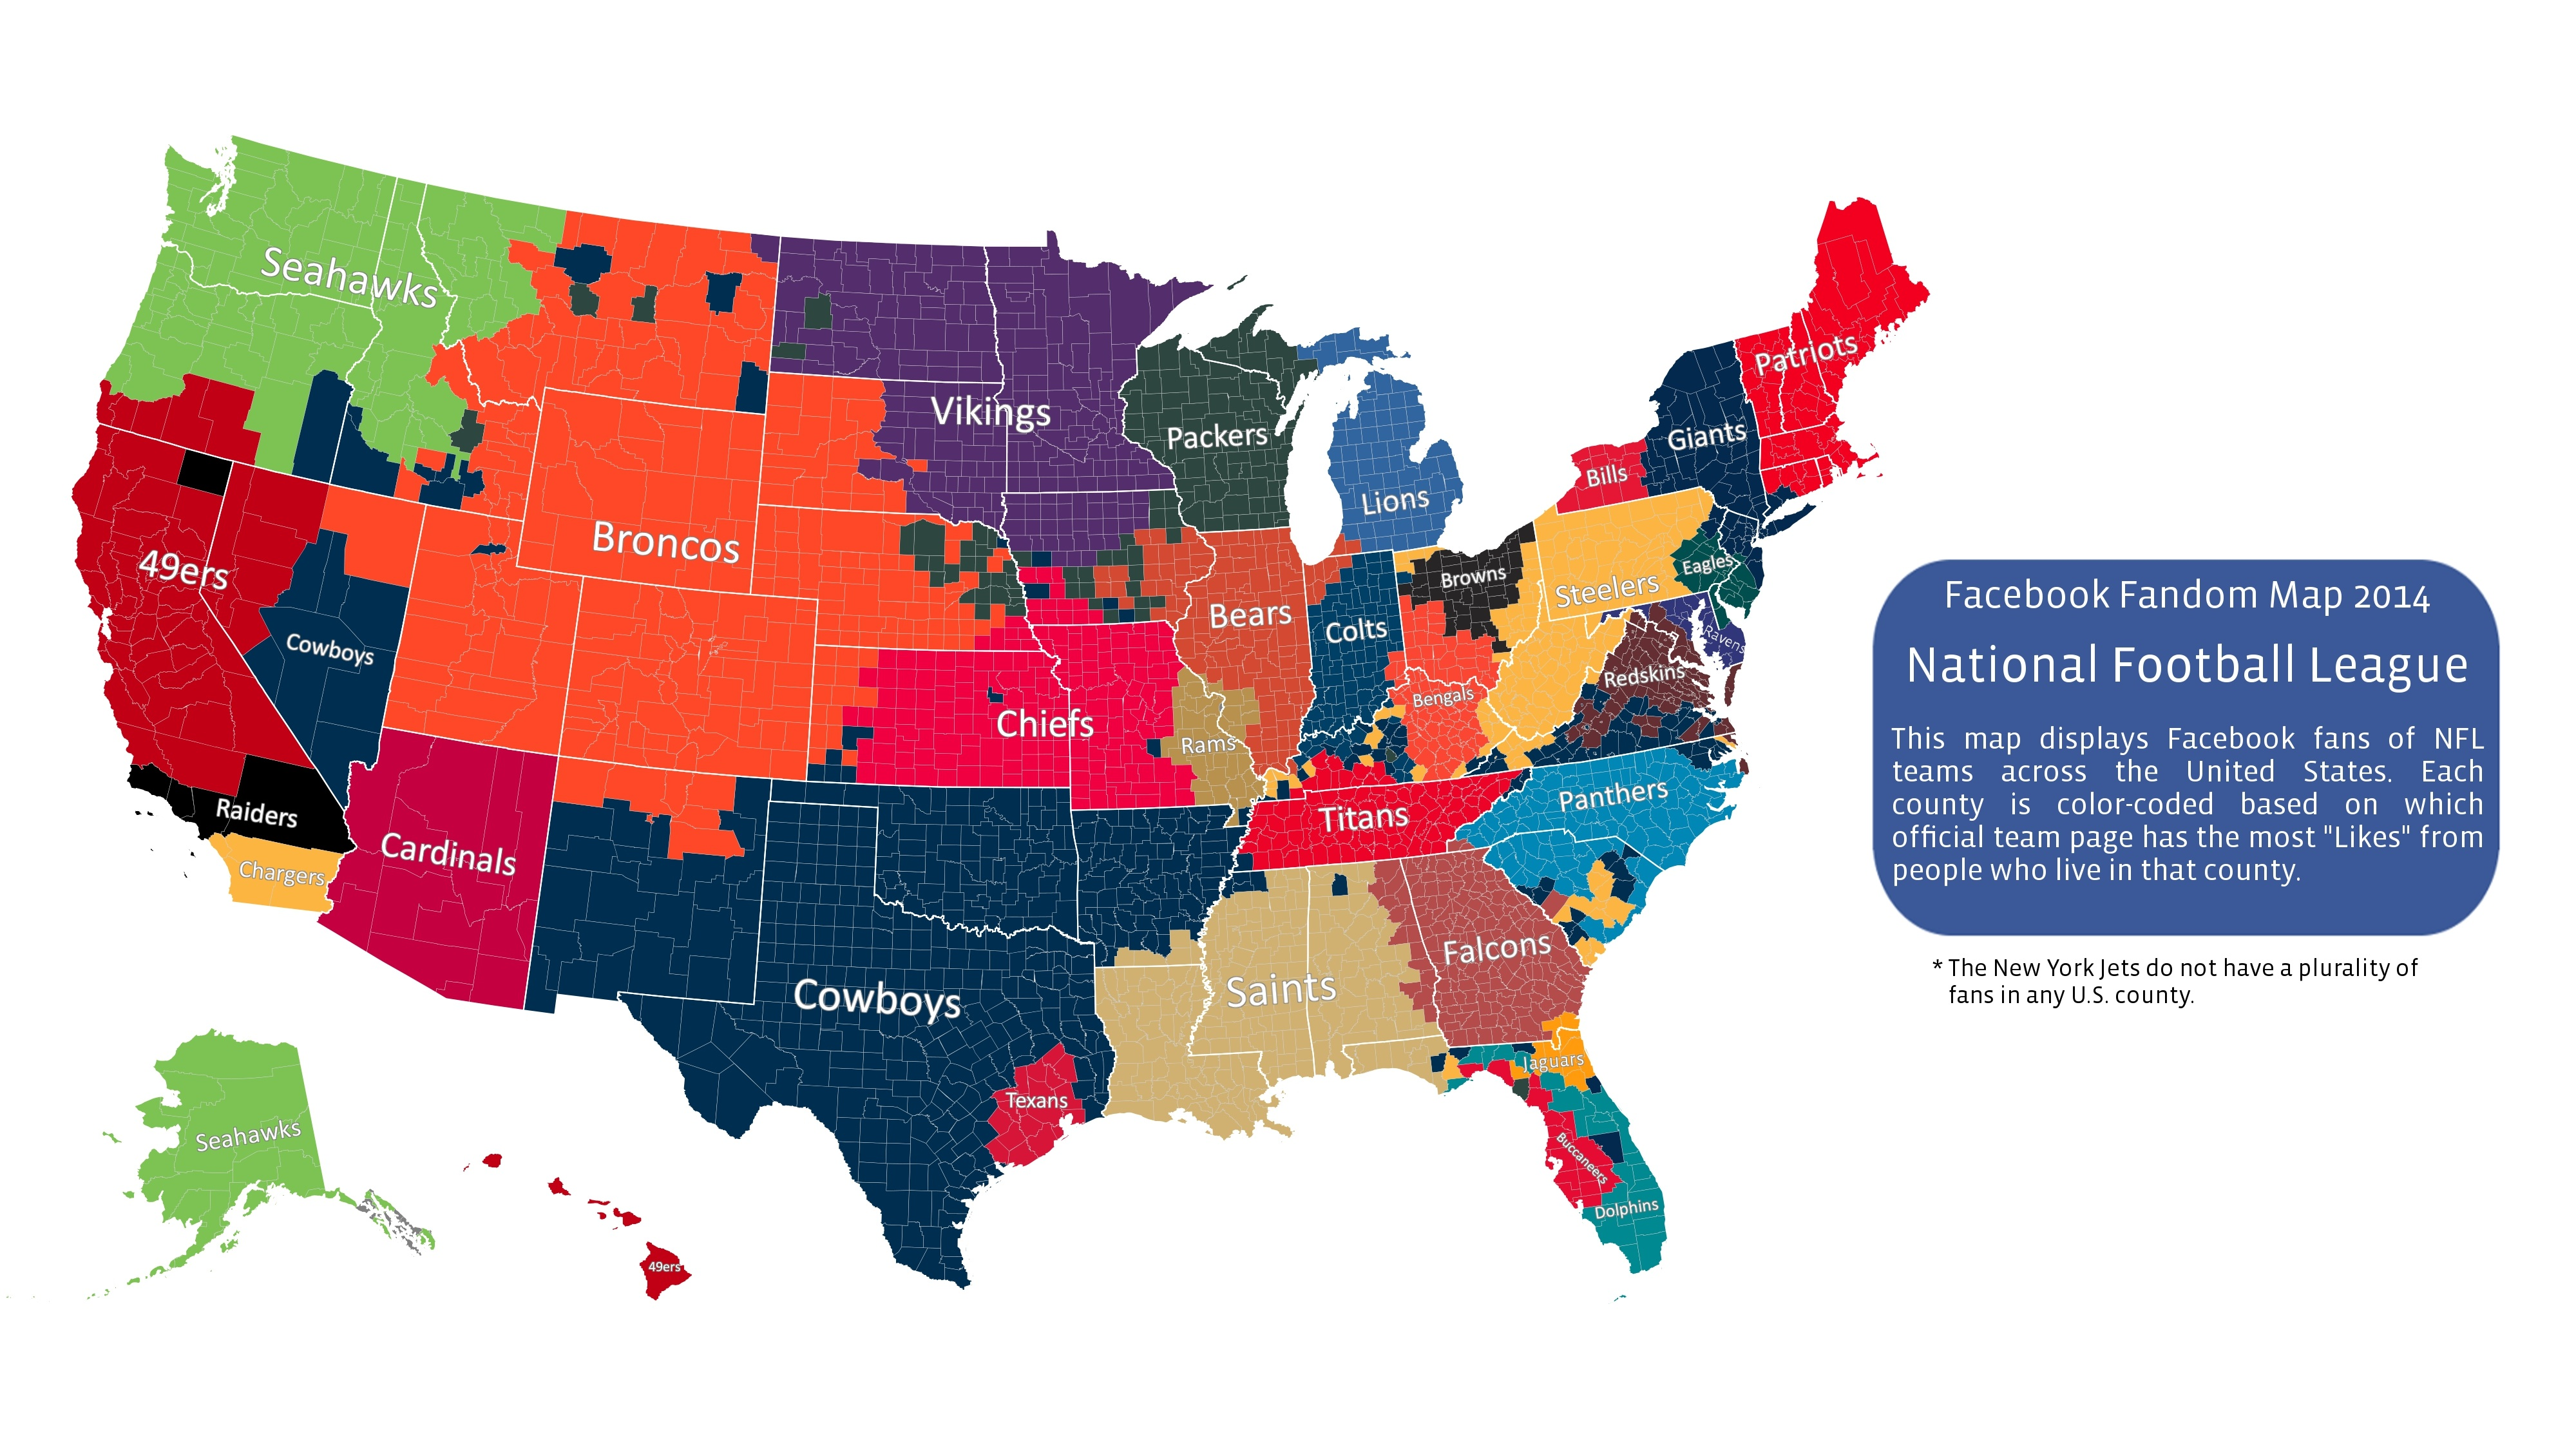 What NFL Team Does Your County Support?